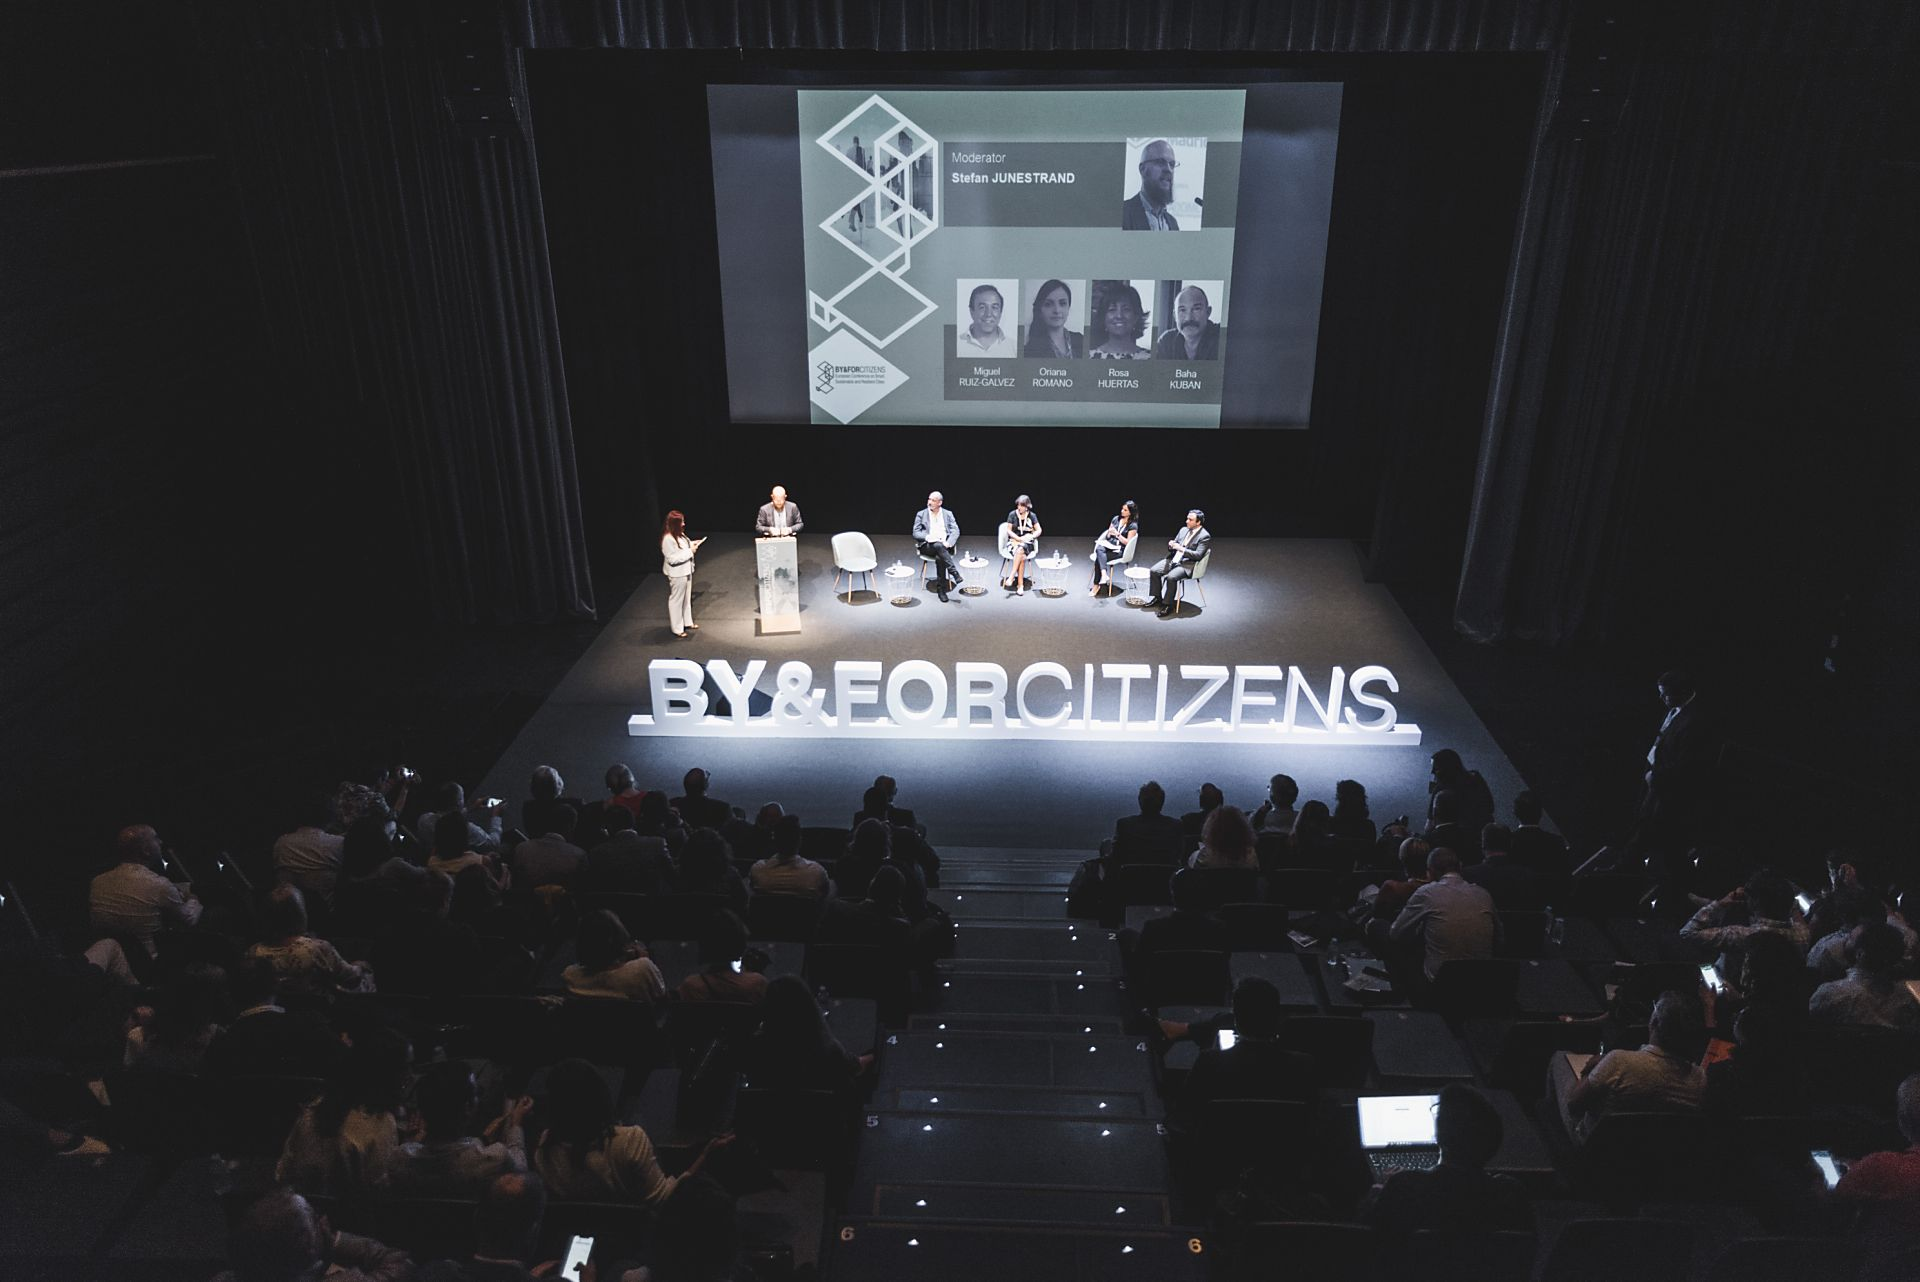 Valladolid, conferenza BY&FORCITIZENS